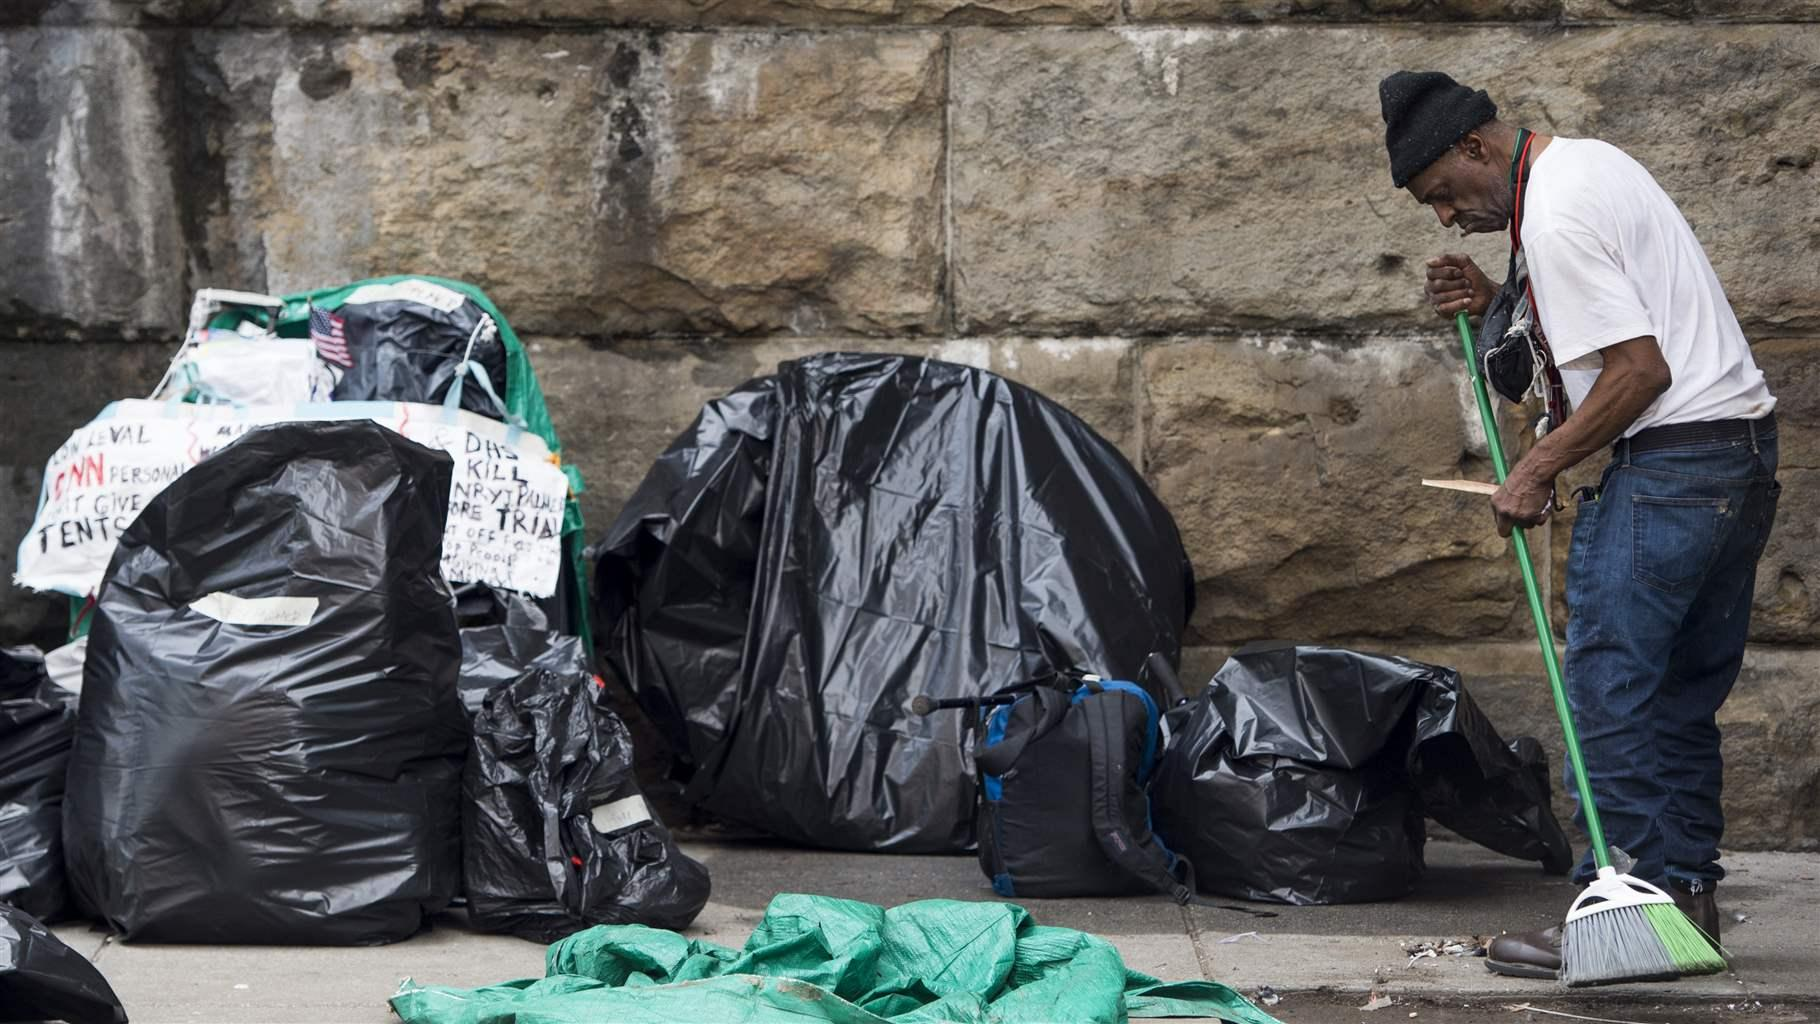 This City Might Give Homeless People the Right to Camp